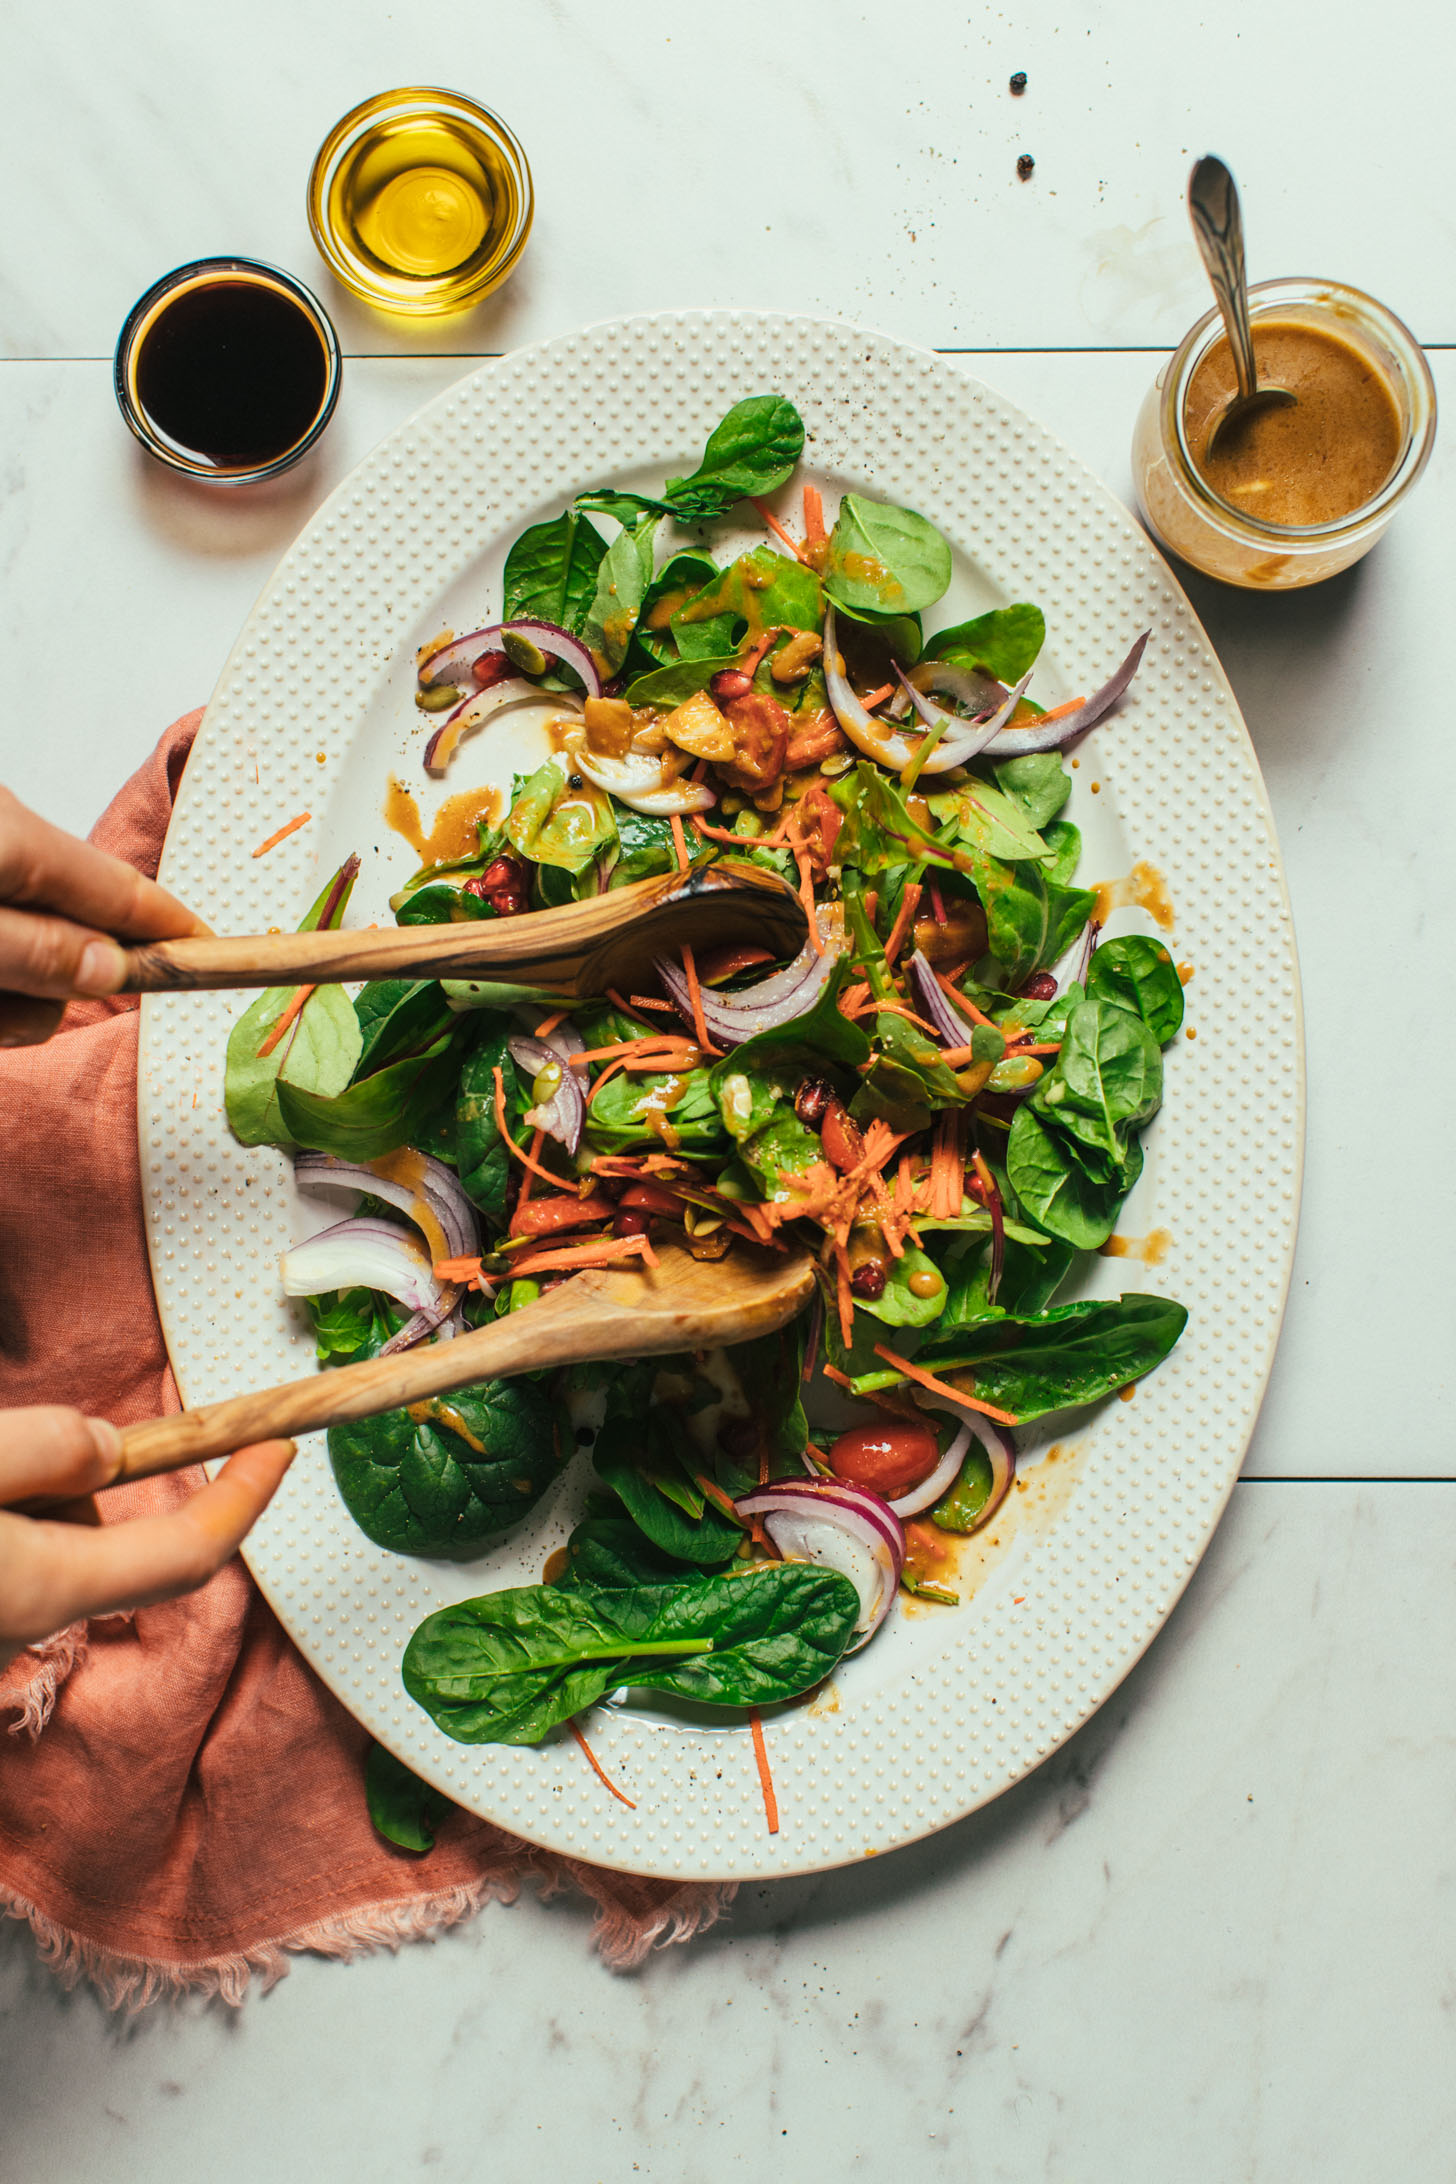 Using wooden salad spoons to toss a salad with homemade Balsamic Vinaigrette Dressing